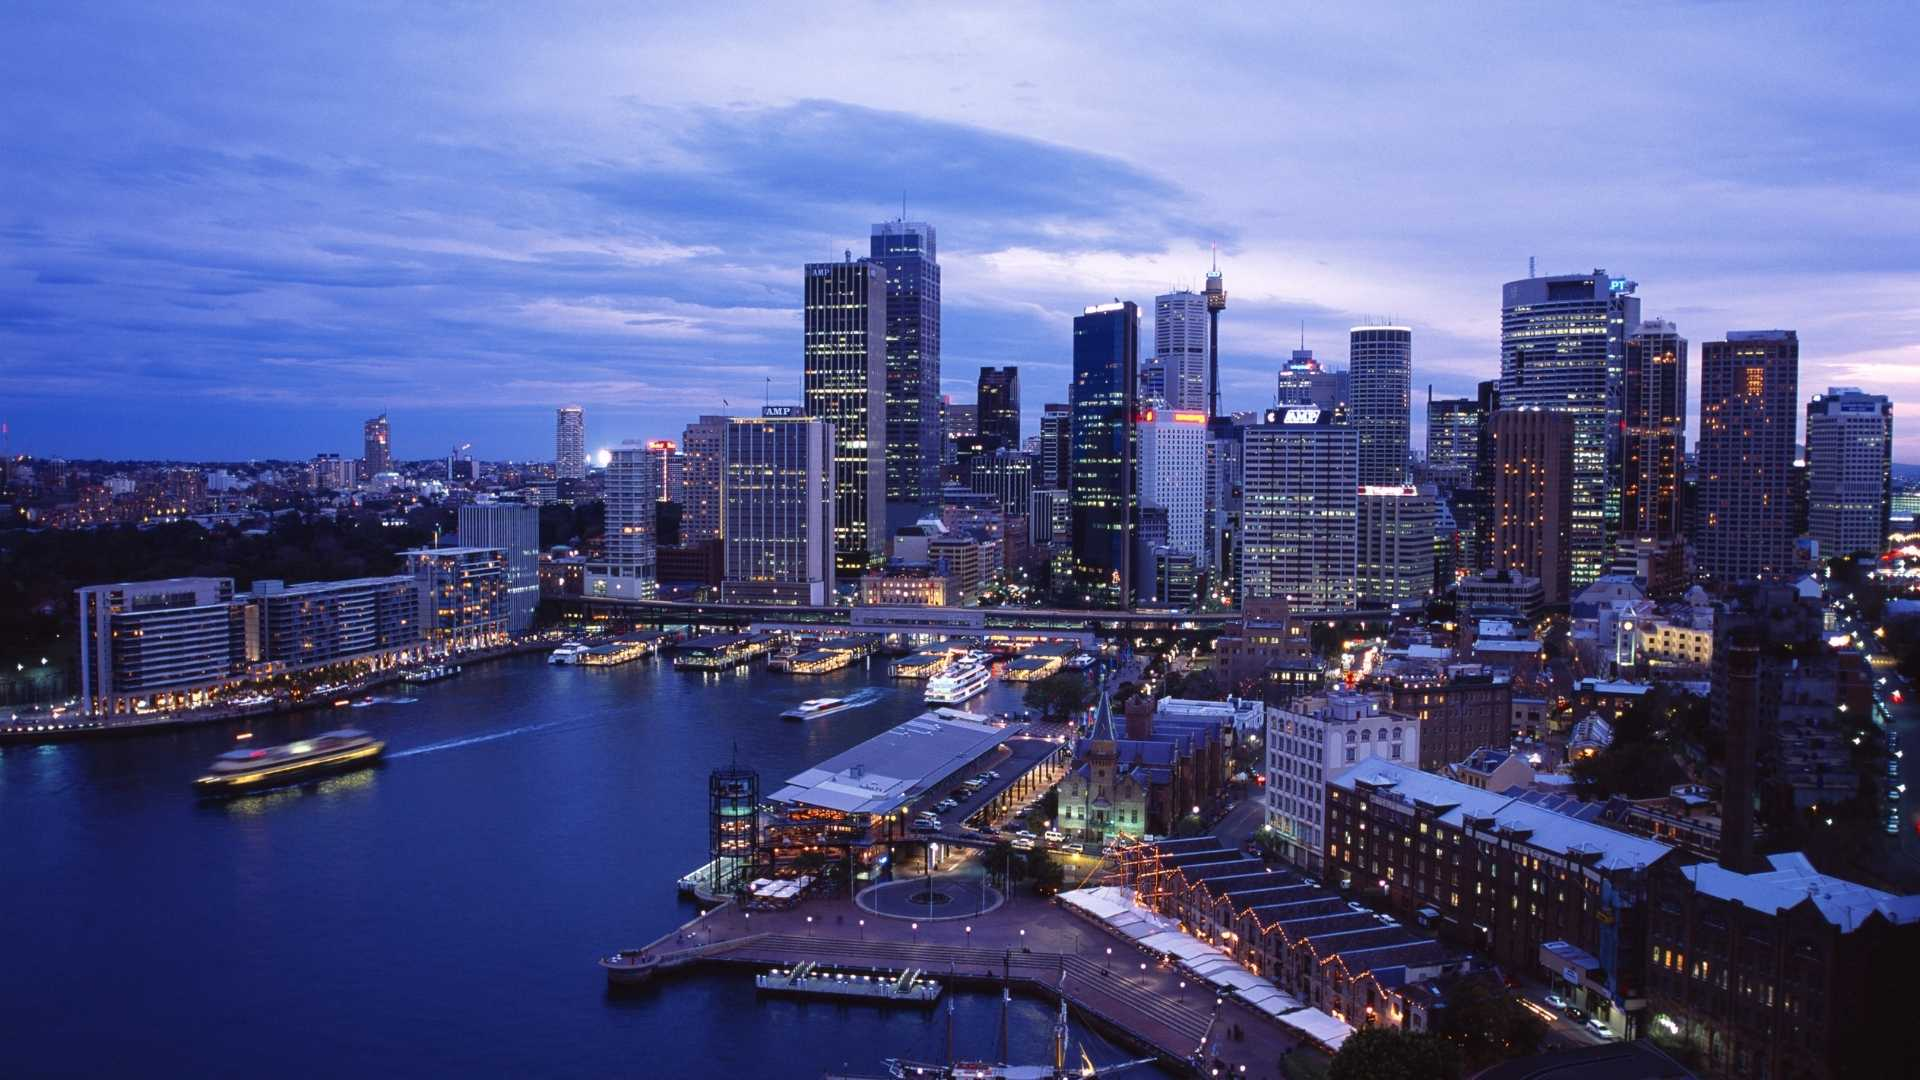 Commercial Real Estate Marketing for overseas investors in Australia 2021